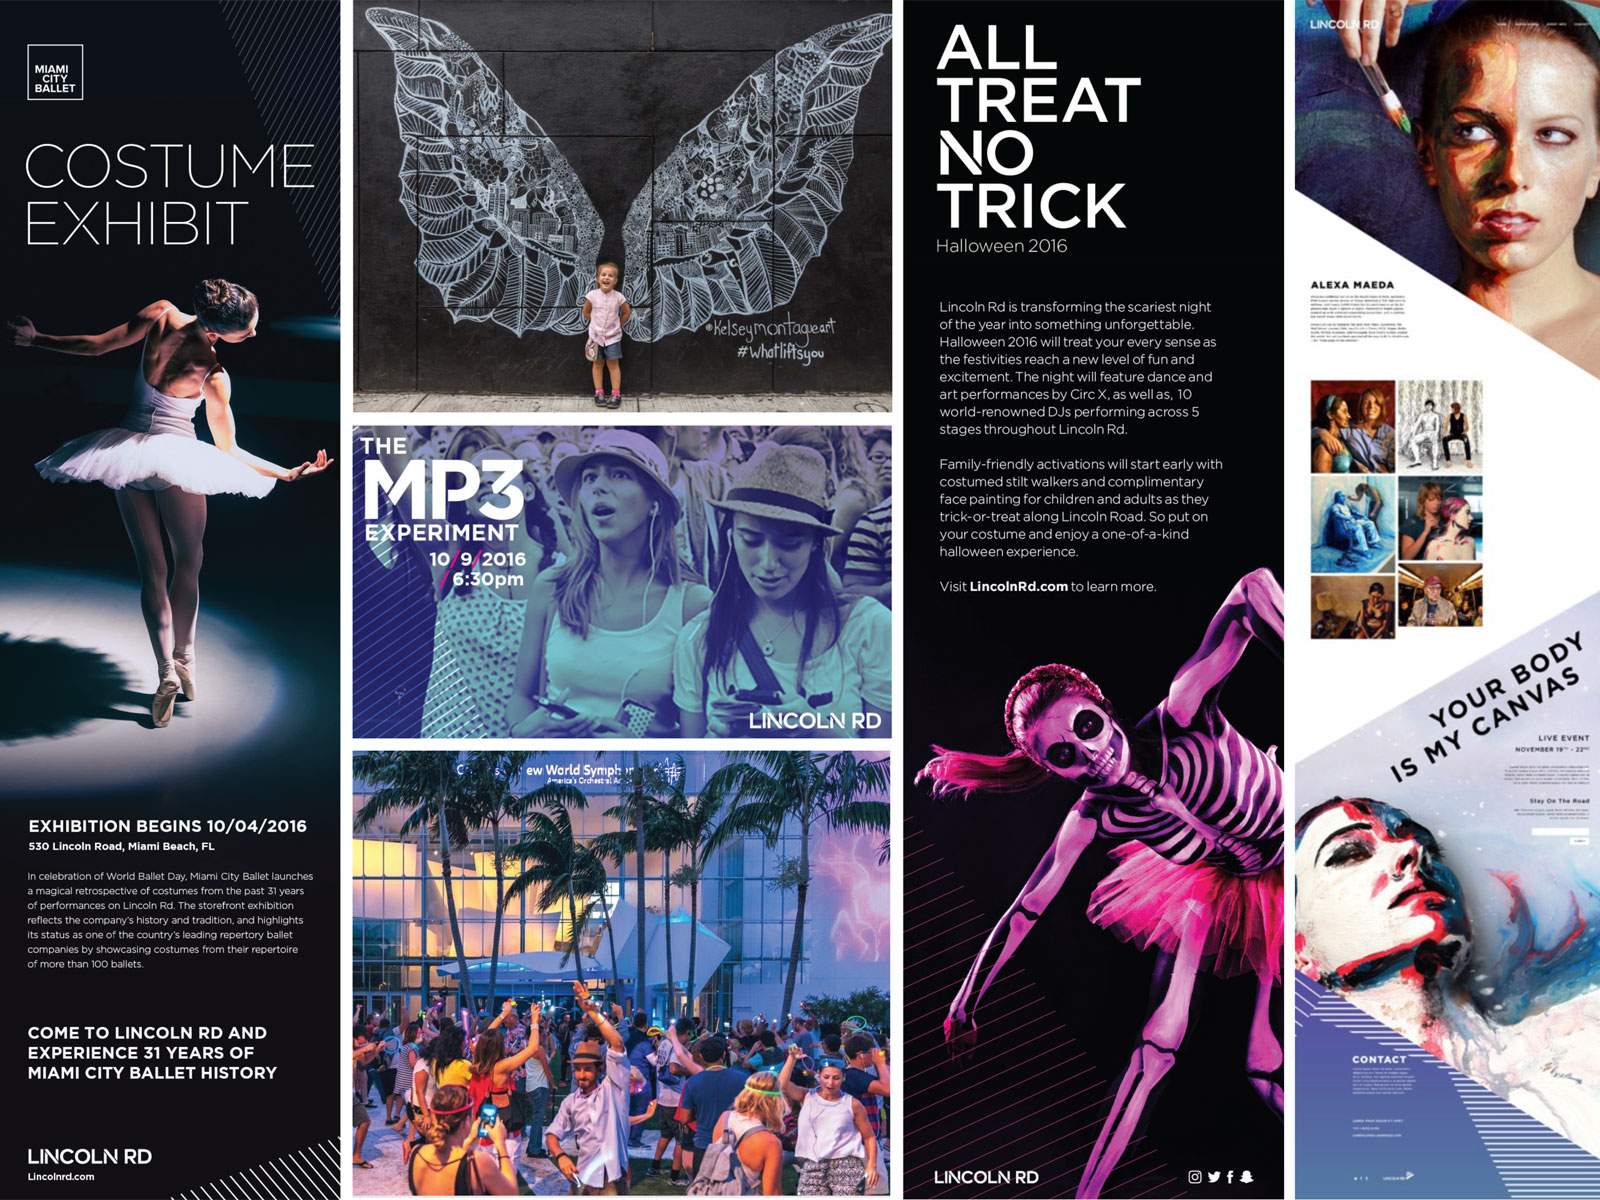 Selected activations programmed on Lincoln Road